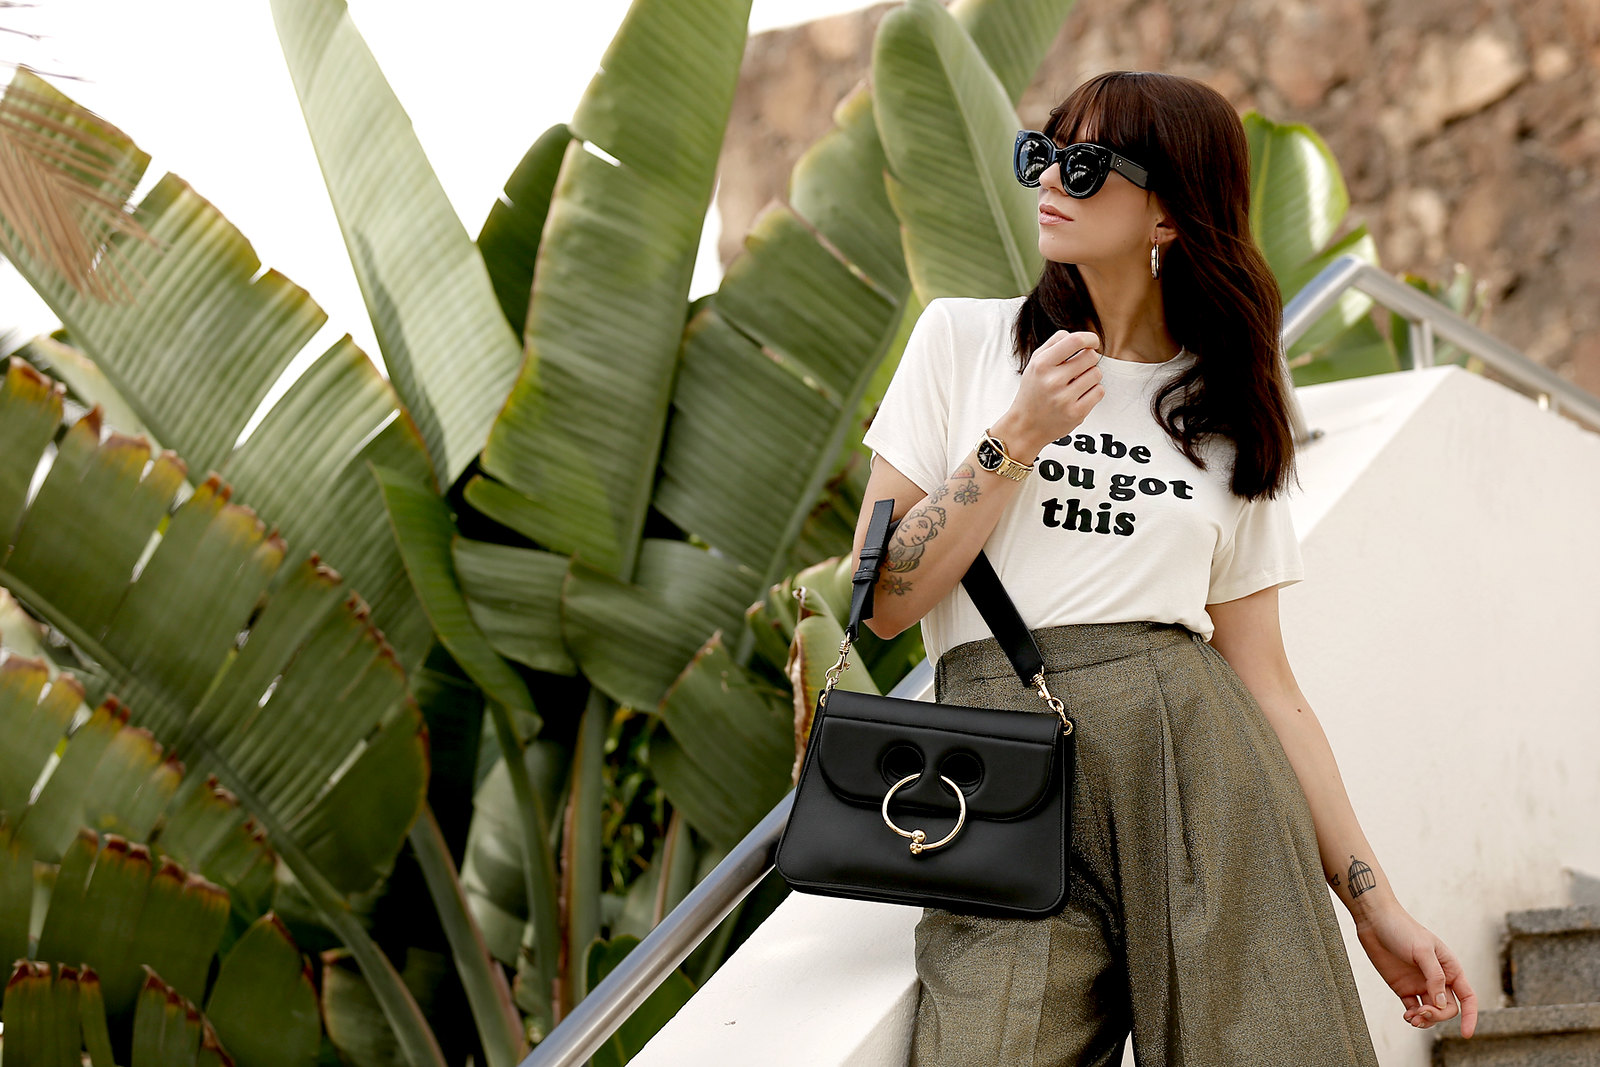 outfit statement print shirt quote cute bangs brunette holiday travel banana leaf palm tree tropical culottes zara j.w.anderson pierce bag céline audrey sunglasses birkenstock sandals cats & dogs ricarda schernus fashionblogger modeblog düsseldorf 3